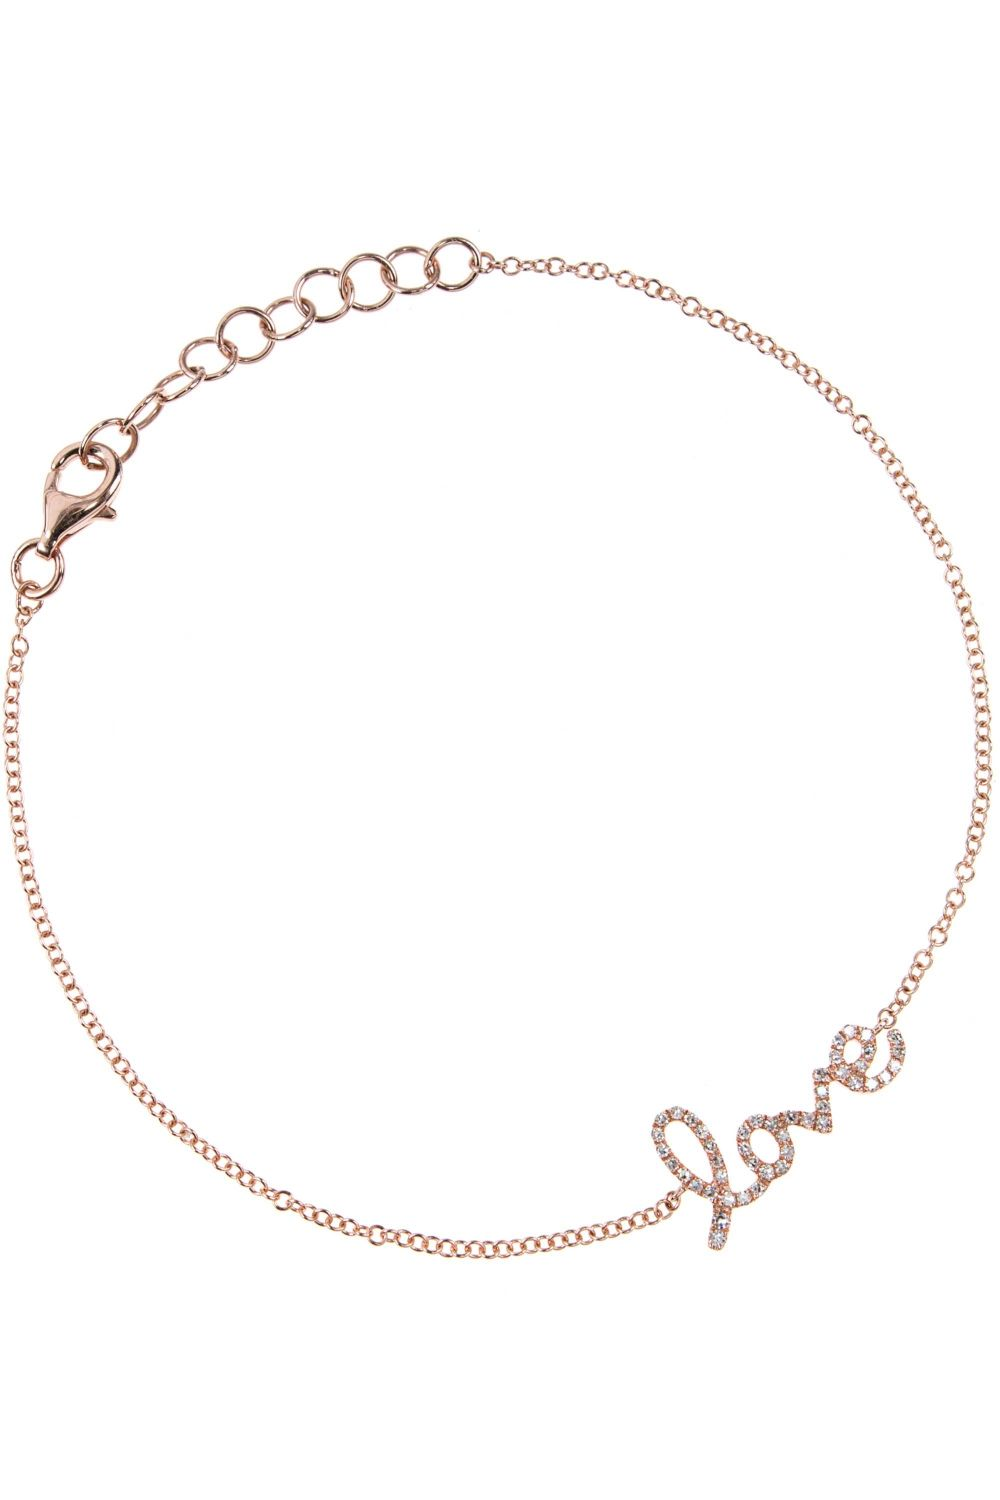 Rose Gold Armband Love Rose Gold Armband Mit Diamanten Accessory Pinterest